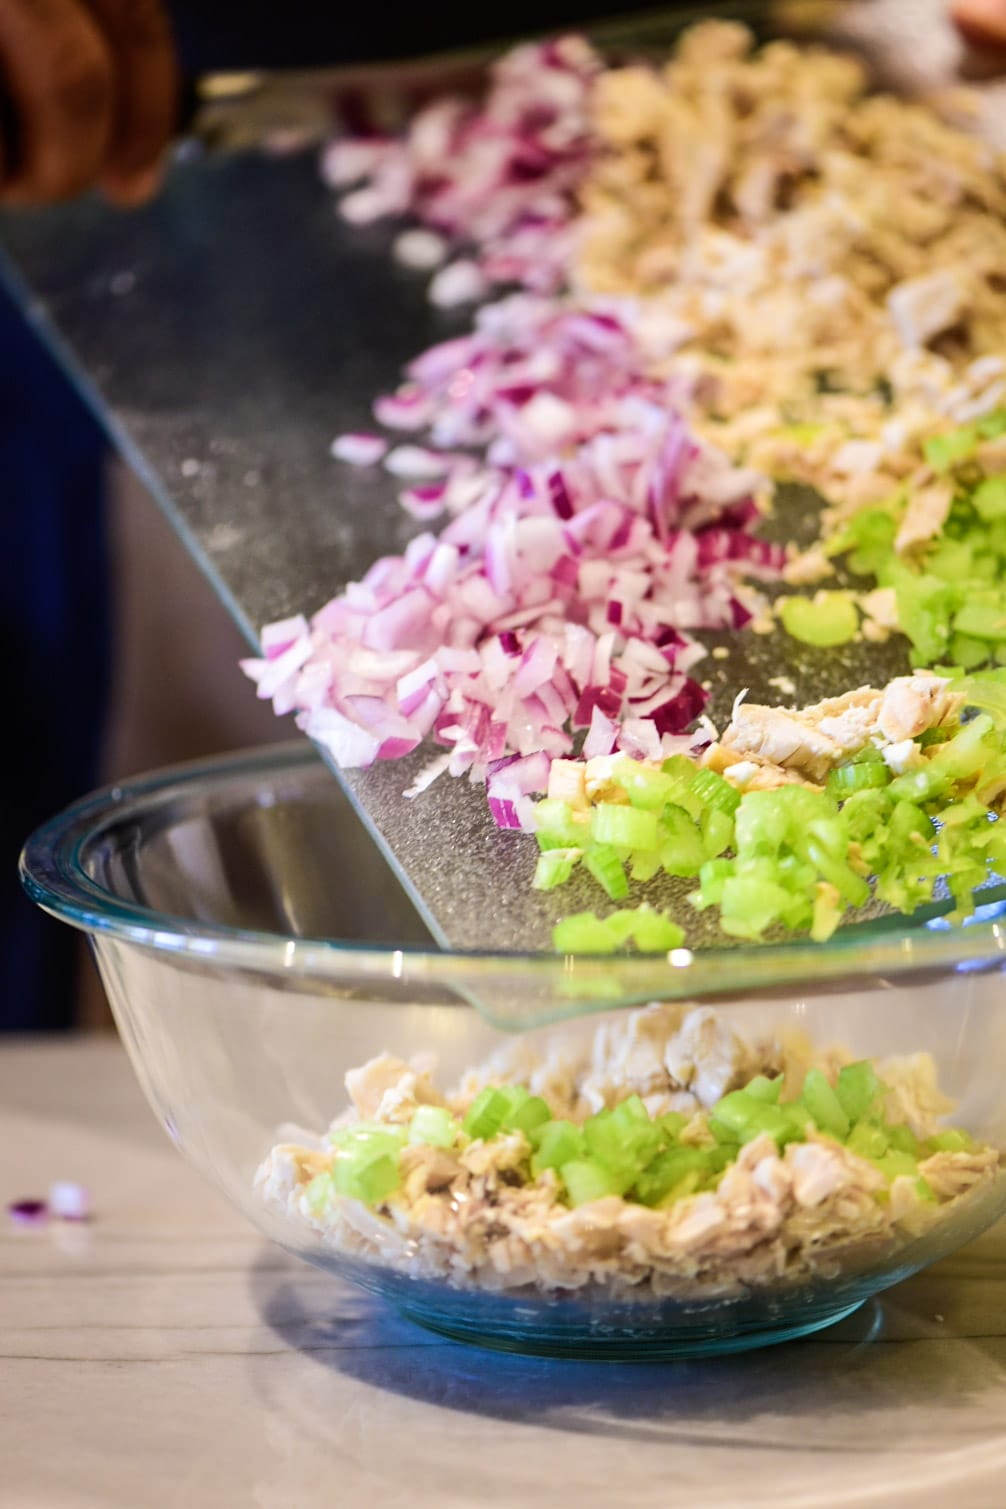 Adding chicken salad ingredients to a large bowl